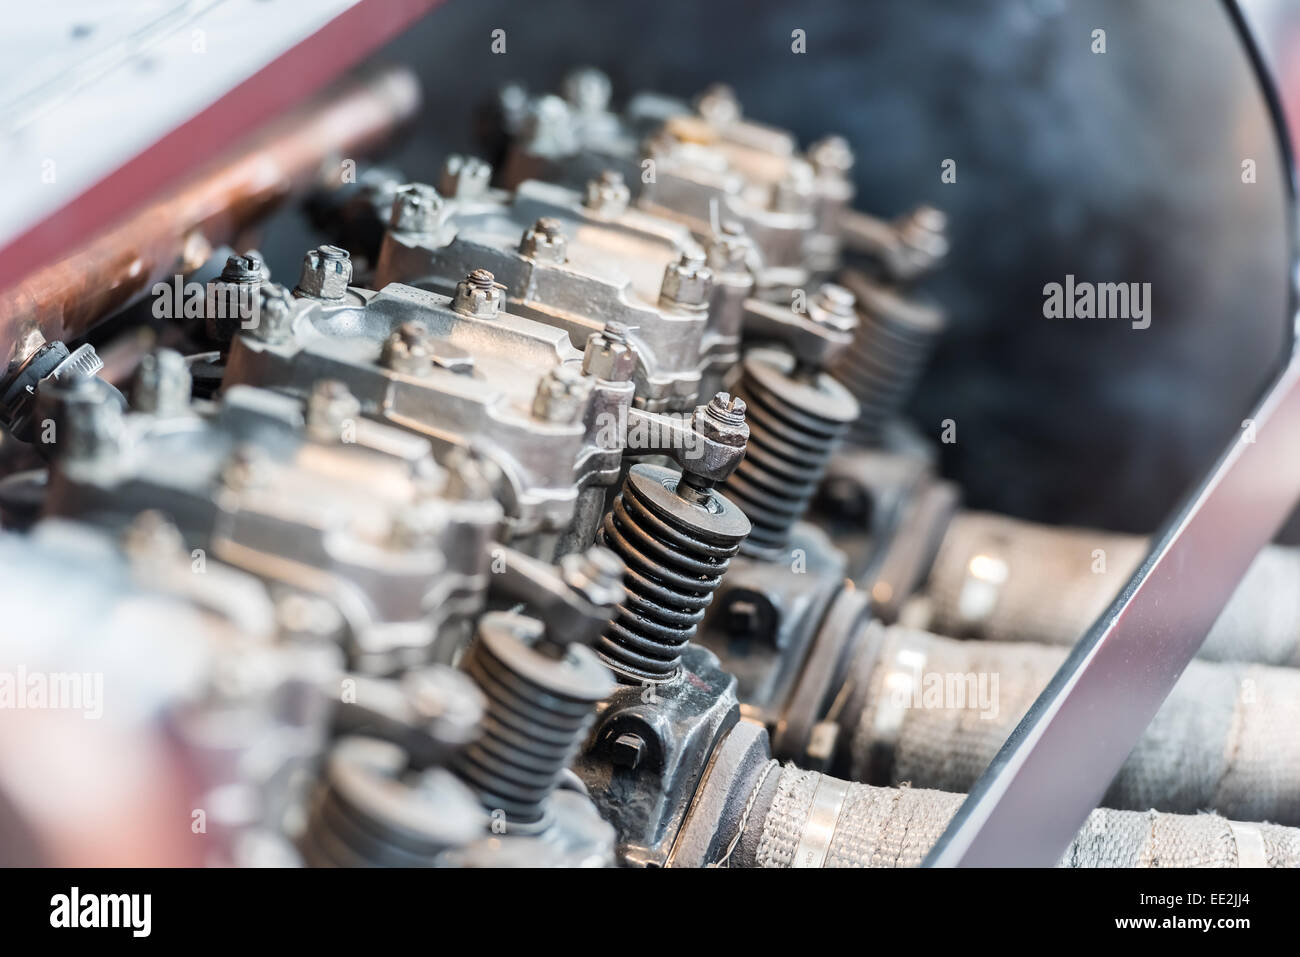 Old Car Internal Combustion Engine Pistons Close Up Stock Photo